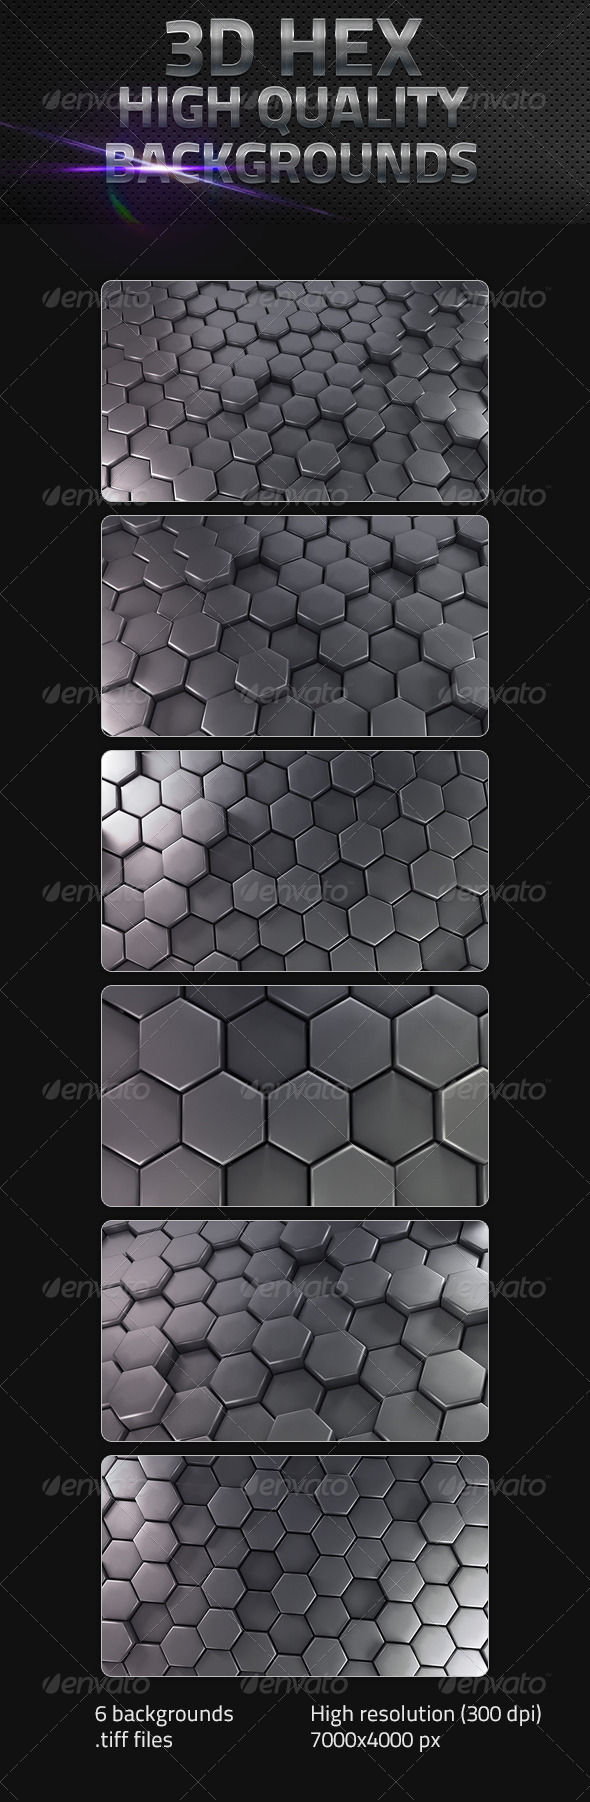 GraphicRiver 3D Hex Backgrounds 5116844